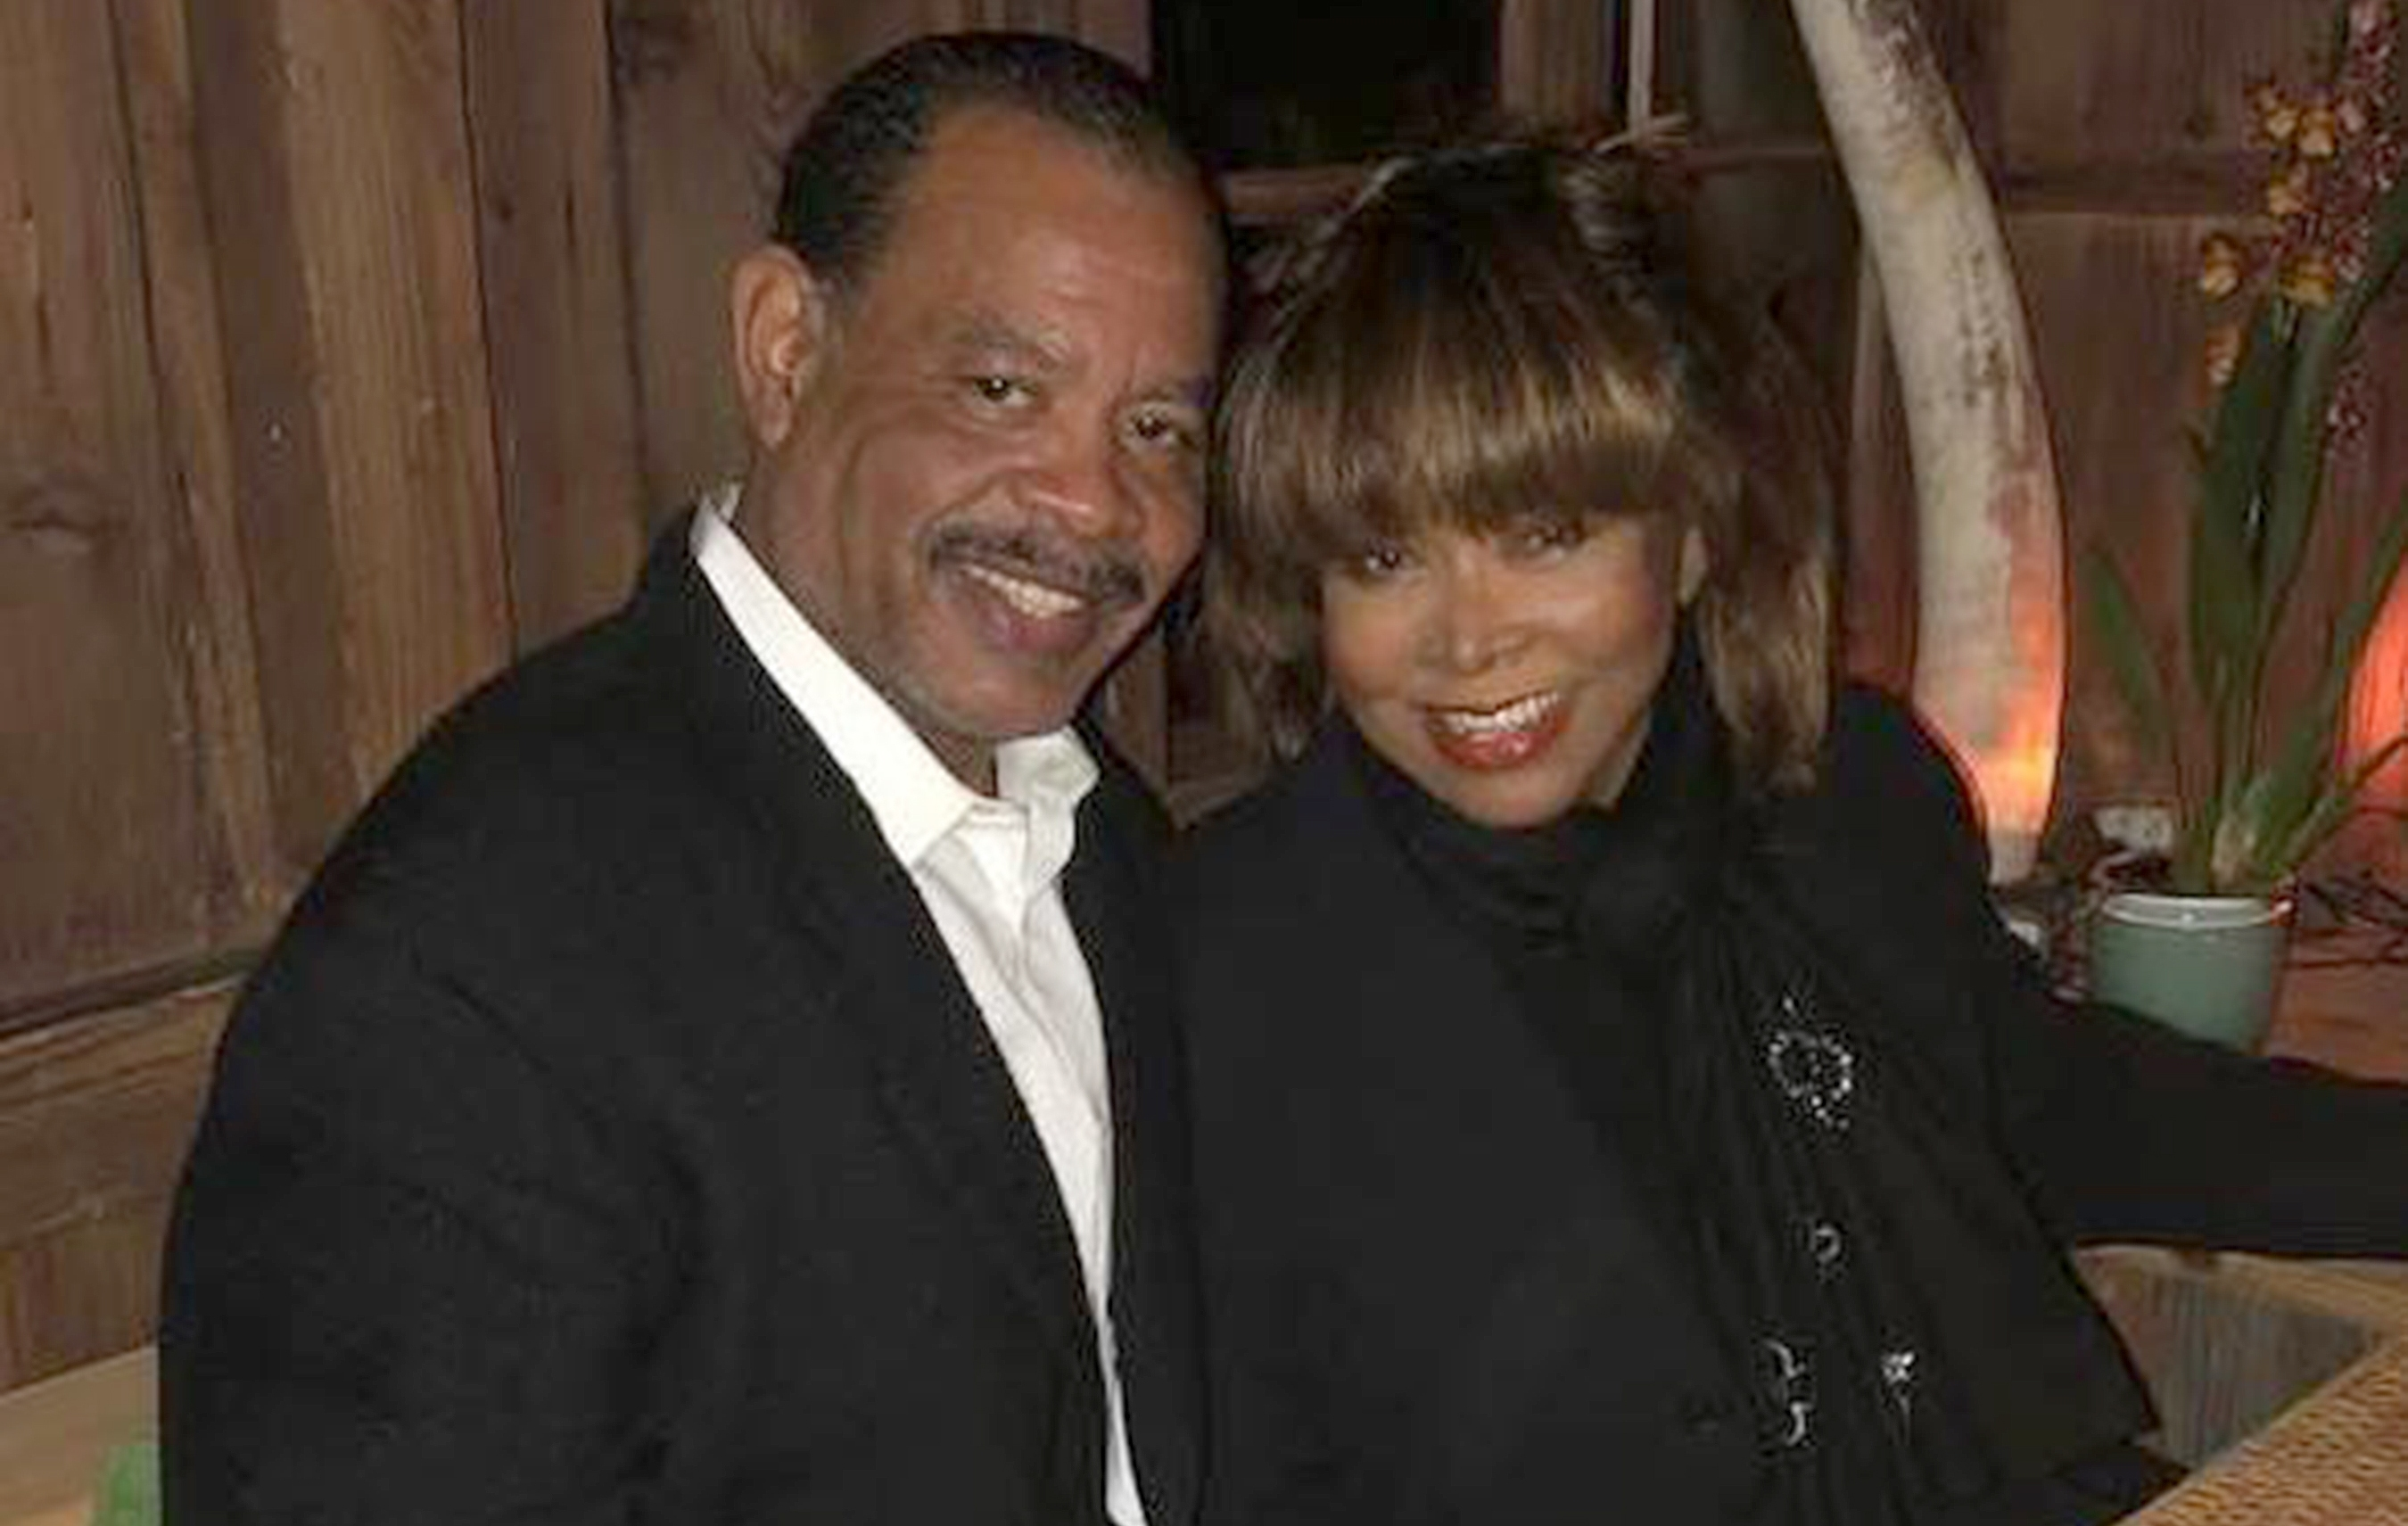 Tina Turner loses first son in apparent suicide